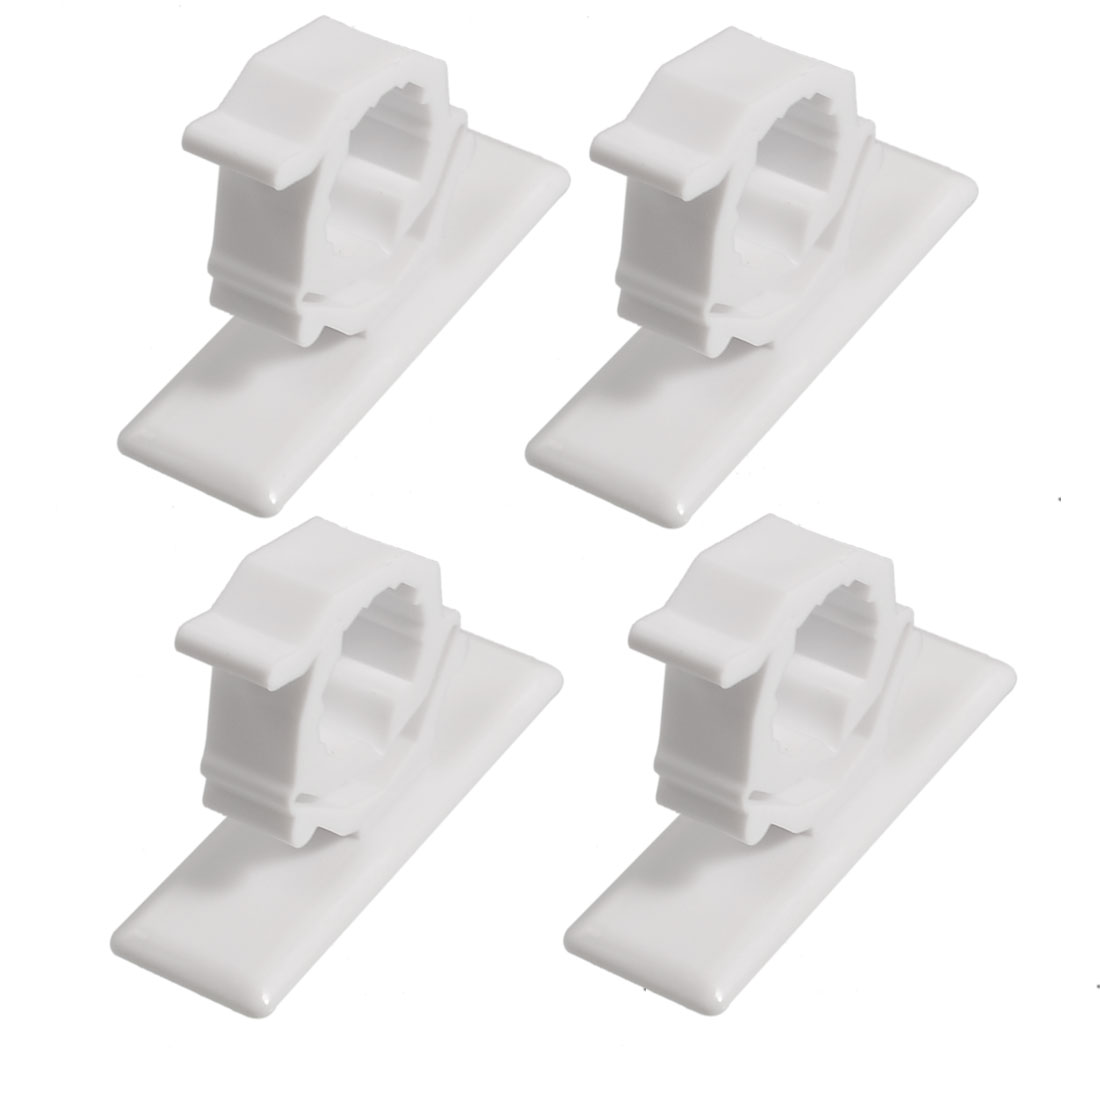 Wardrobe Mounted 16mm Dia Rod Garment Clothes Rod Lever Bracket Holder 2 Pairs